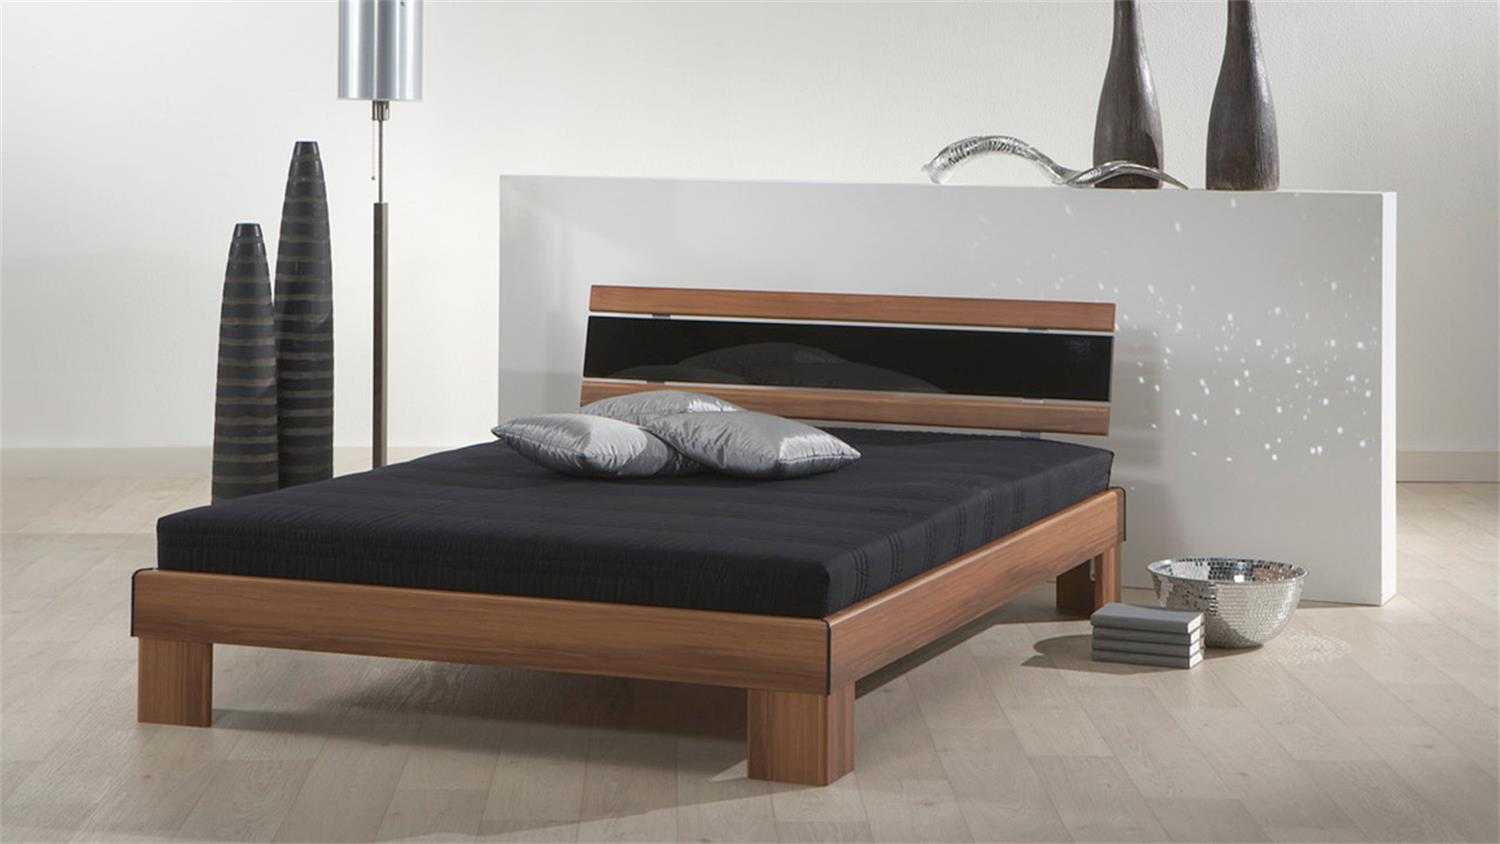 betten mit matratze 140x200 28 images bett massivholz 140x200 lattenrost matratze in ikea. Black Bedroom Furniture Sets. Home Design Ideas